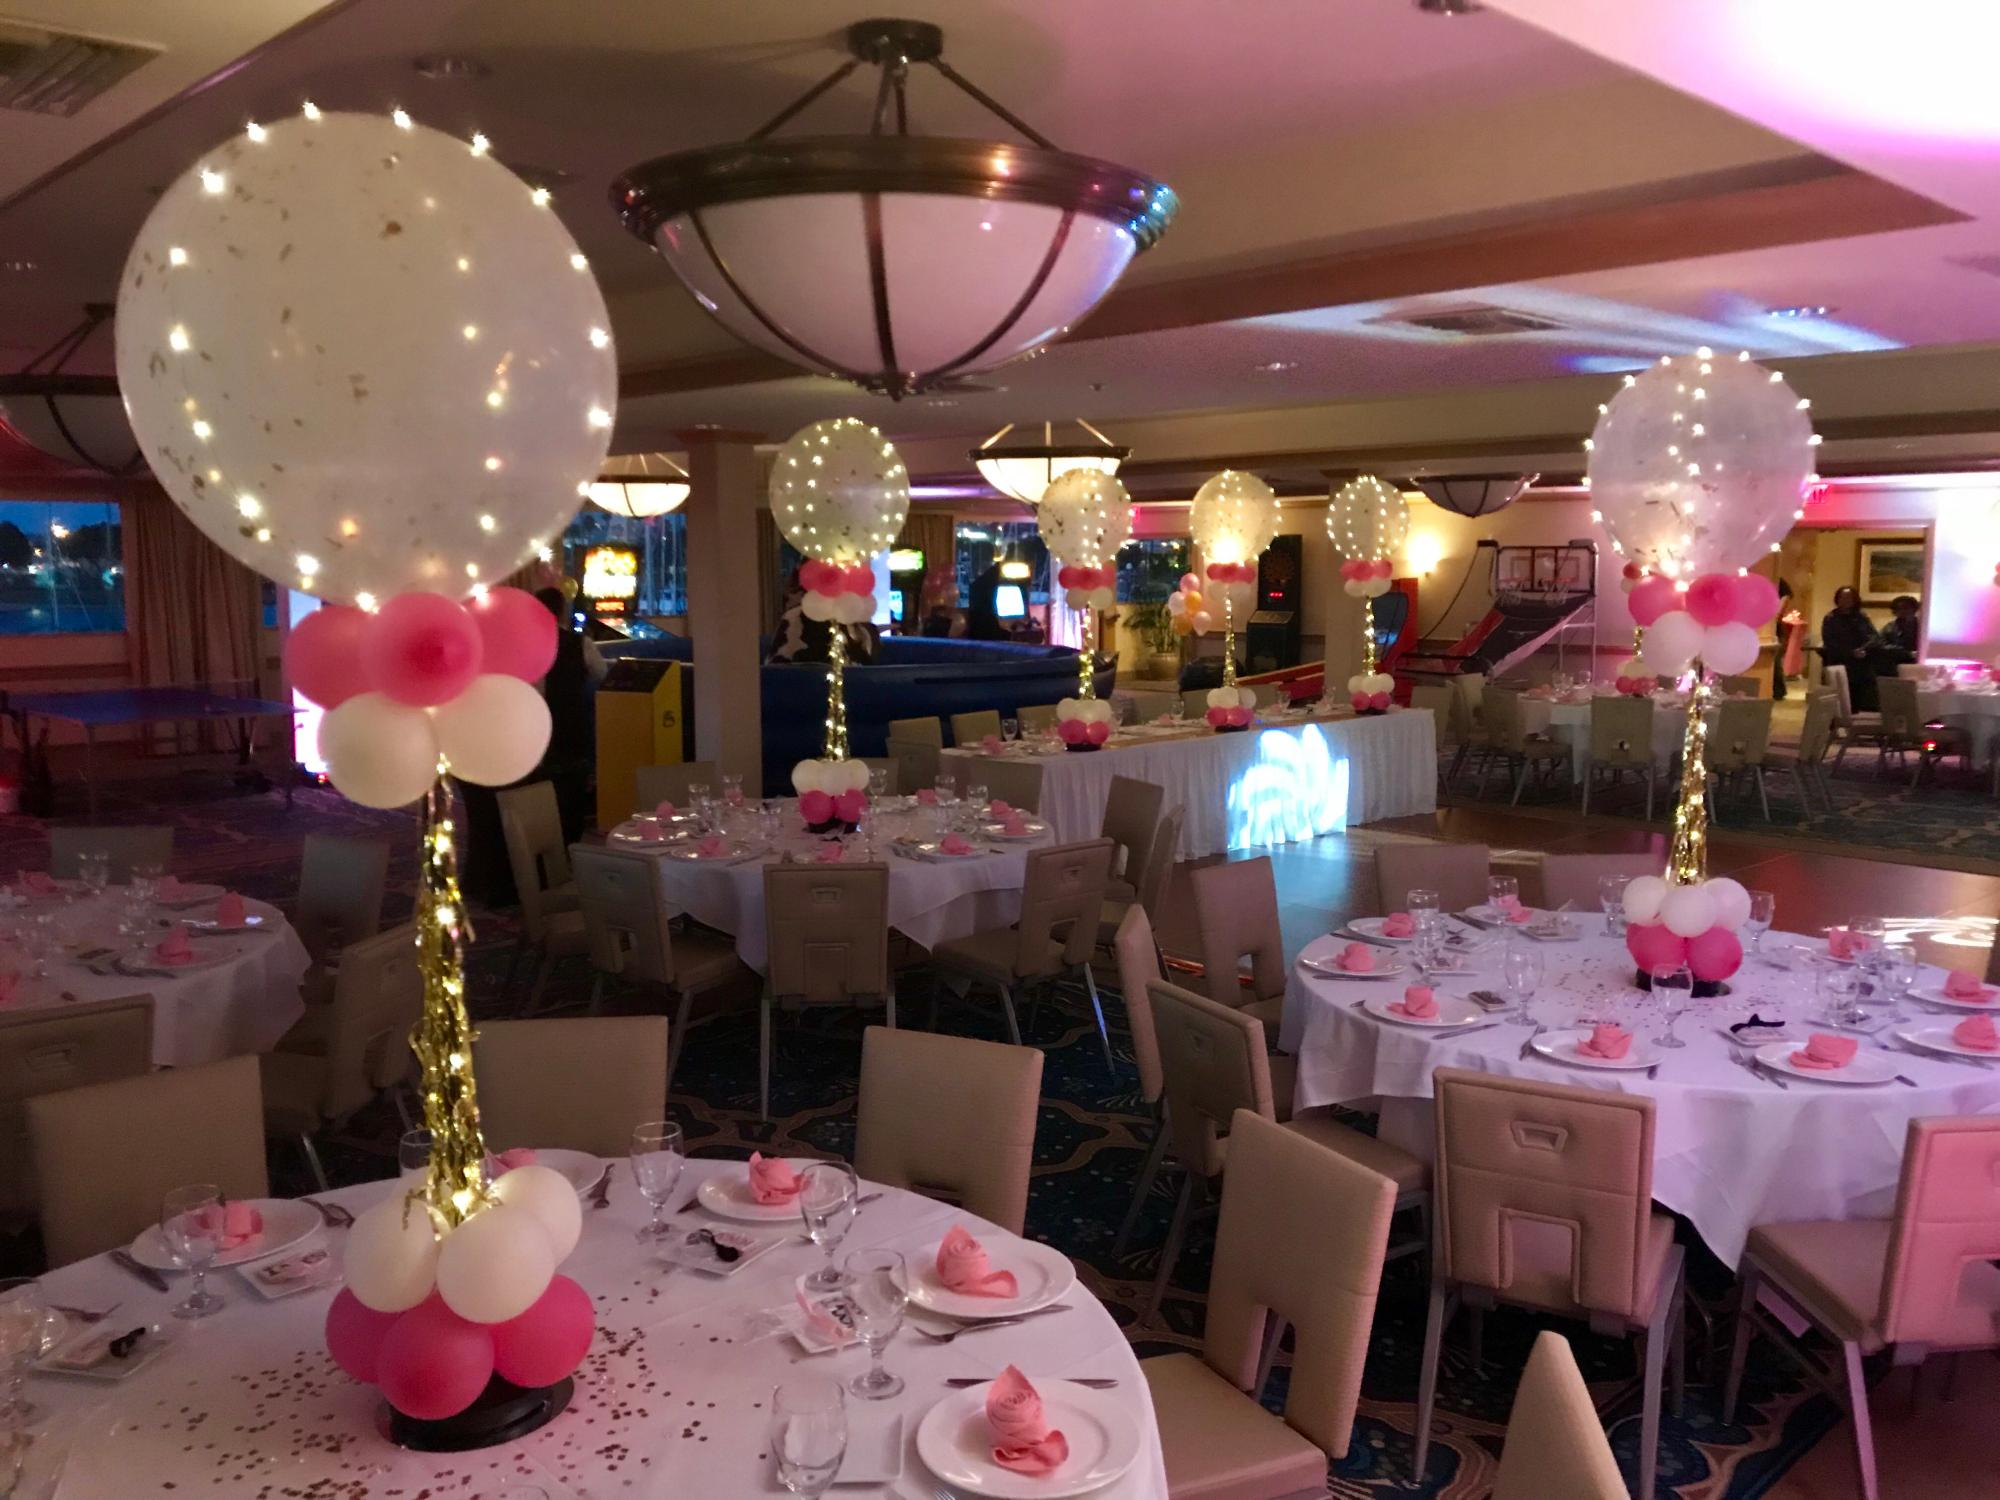 balloon_centerpieces_with_lights_Violet_Balloonz.JPG